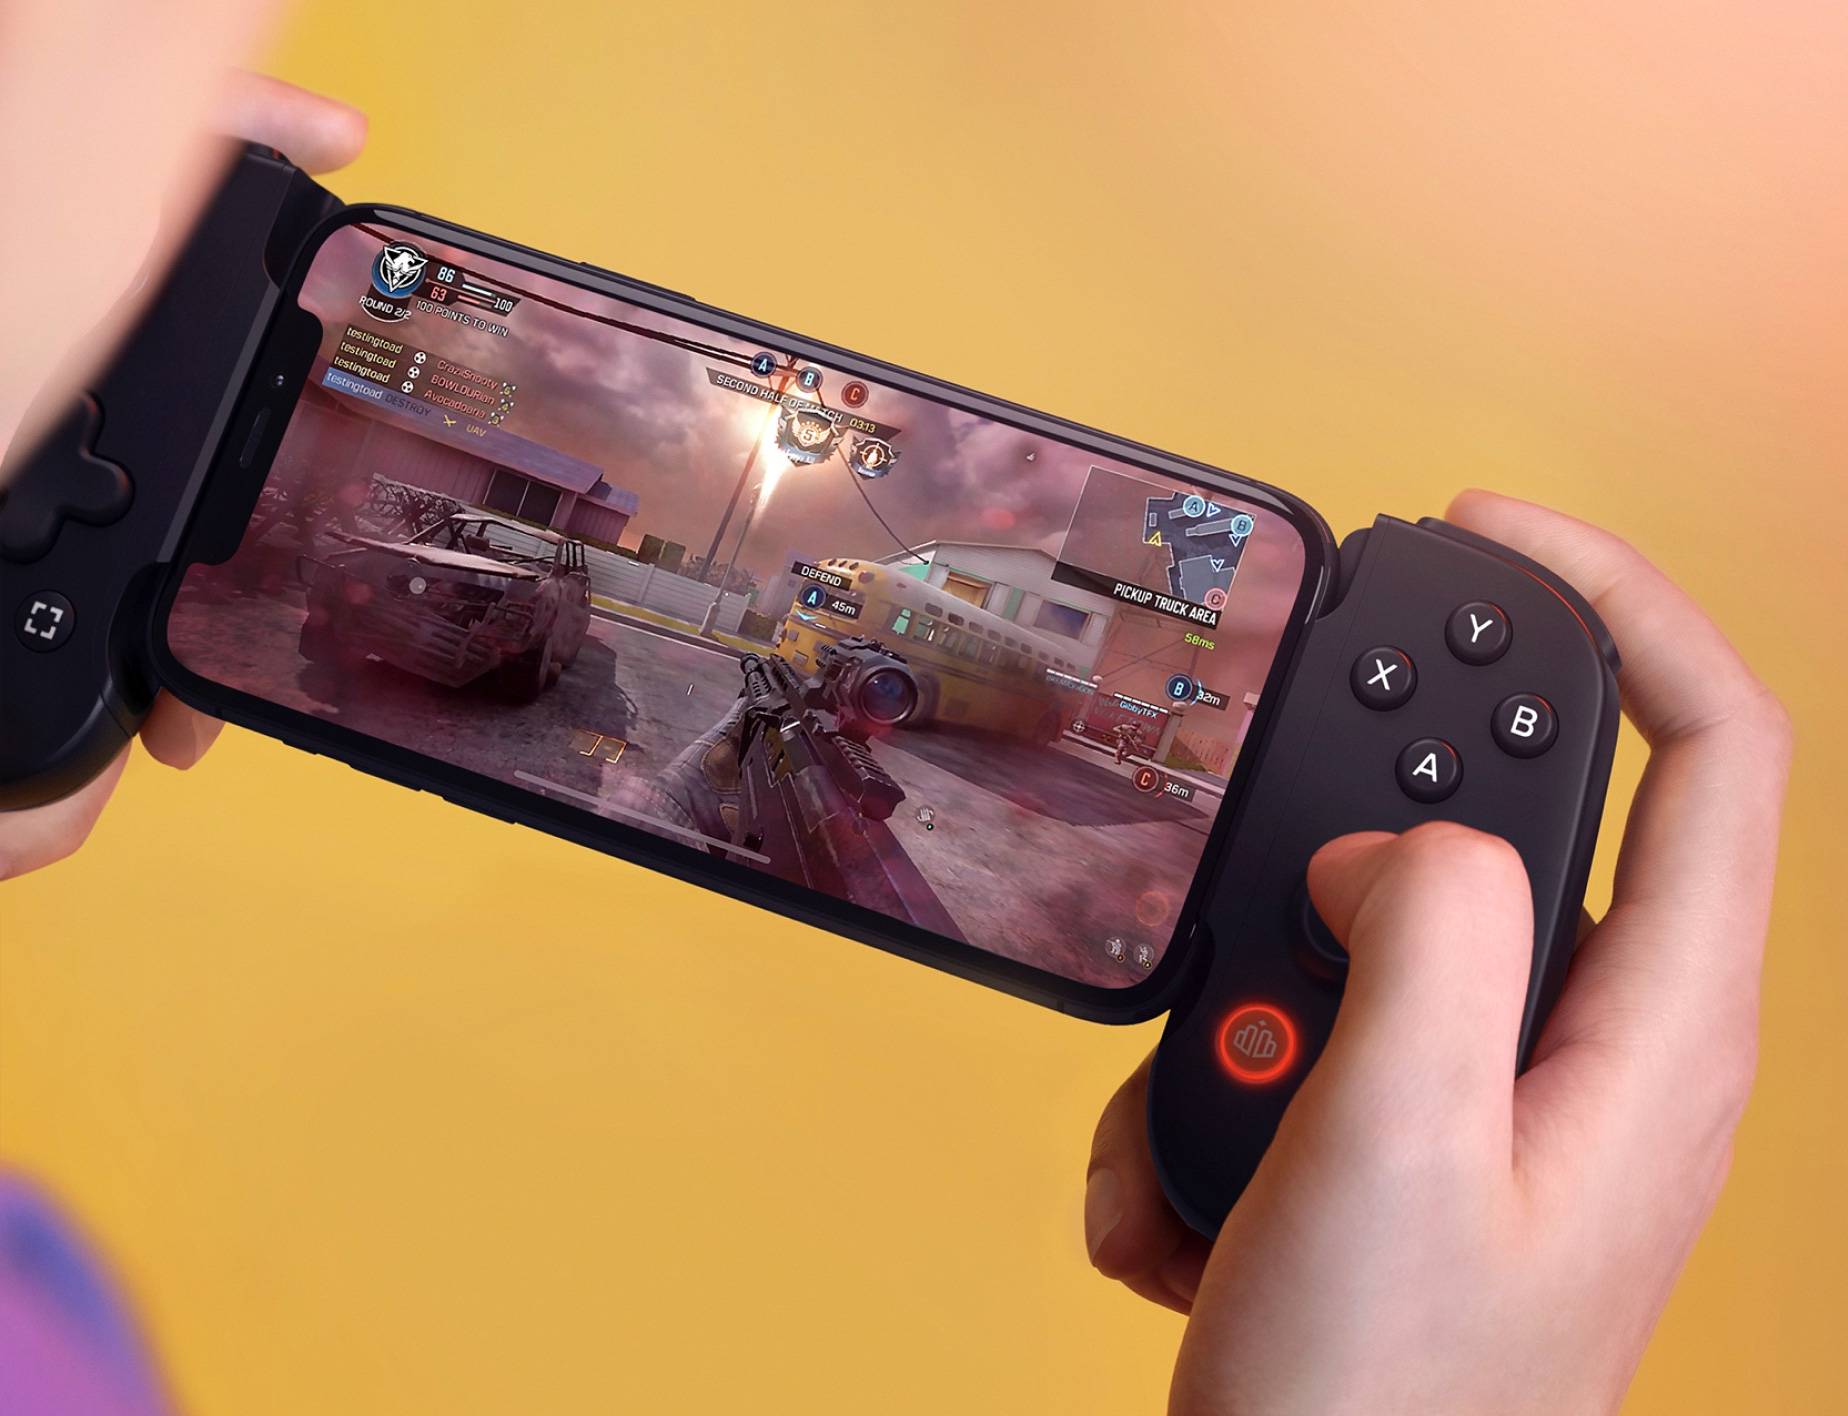 Switch Up Your Phone Game with the Backbone One Controller at werd.com